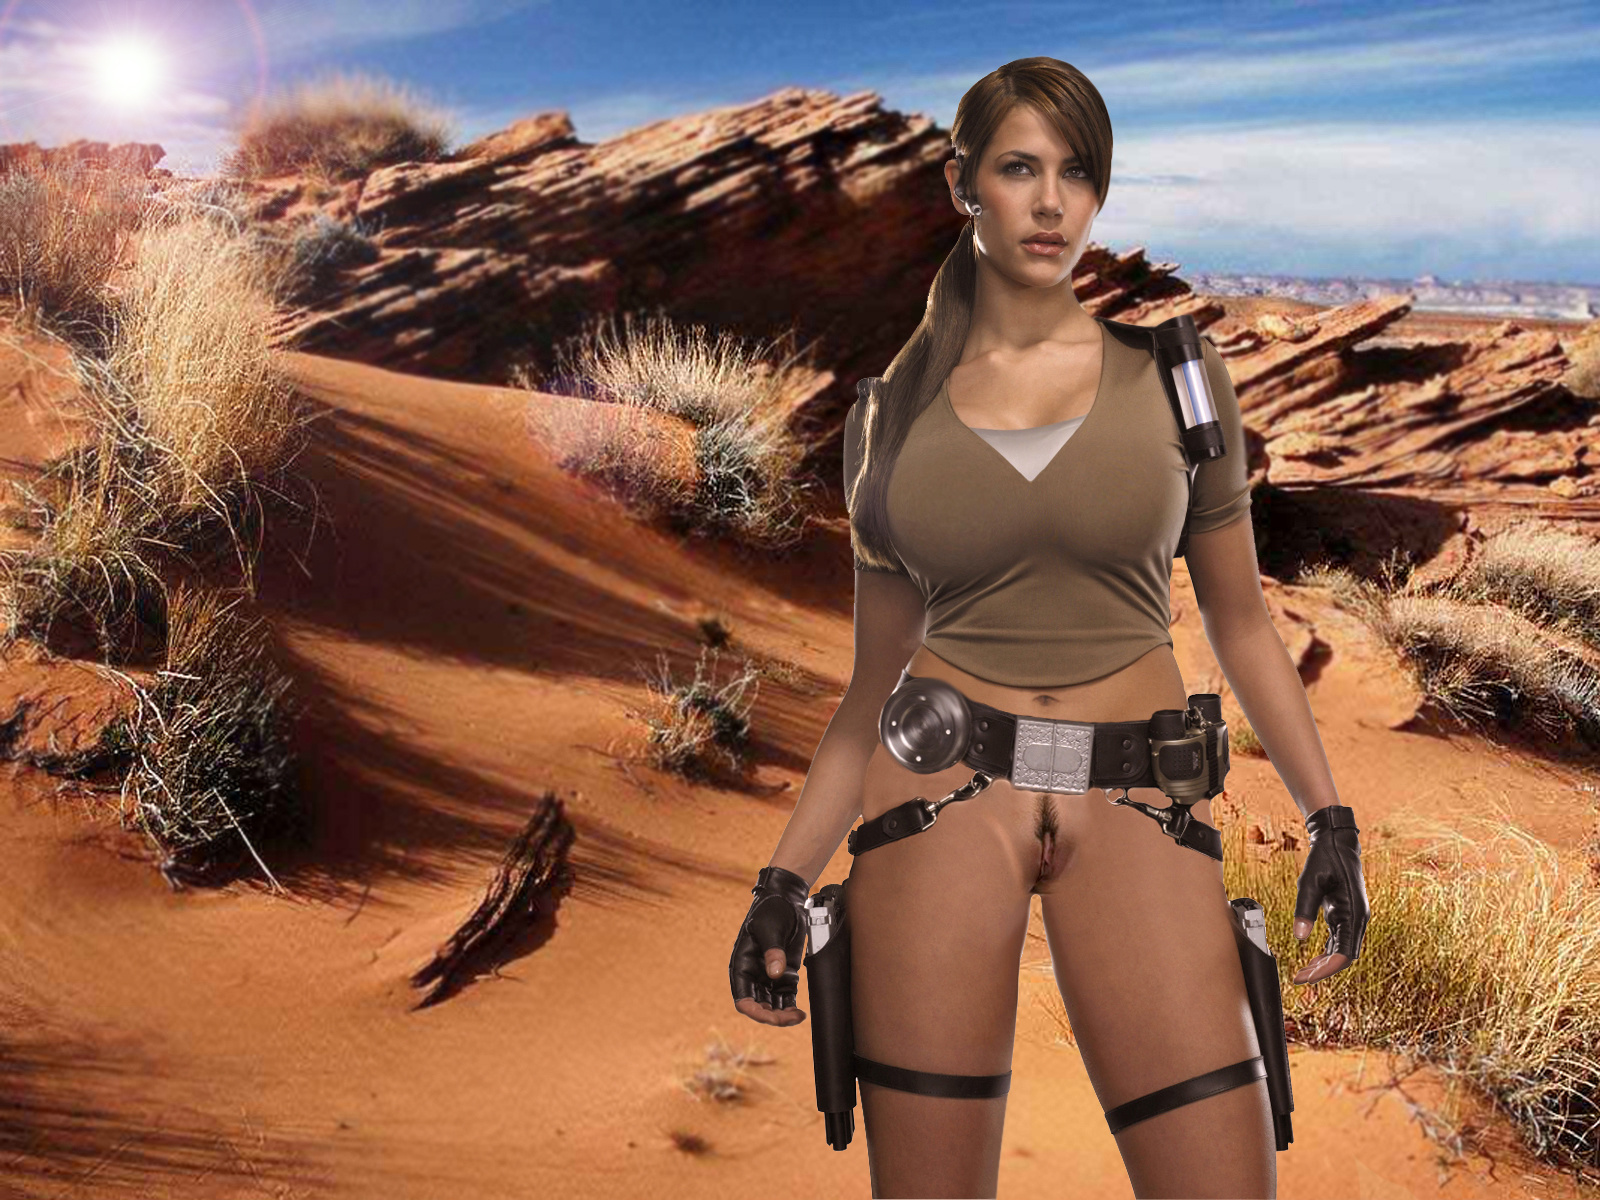 Lara croft naked wallpapers xxx scene